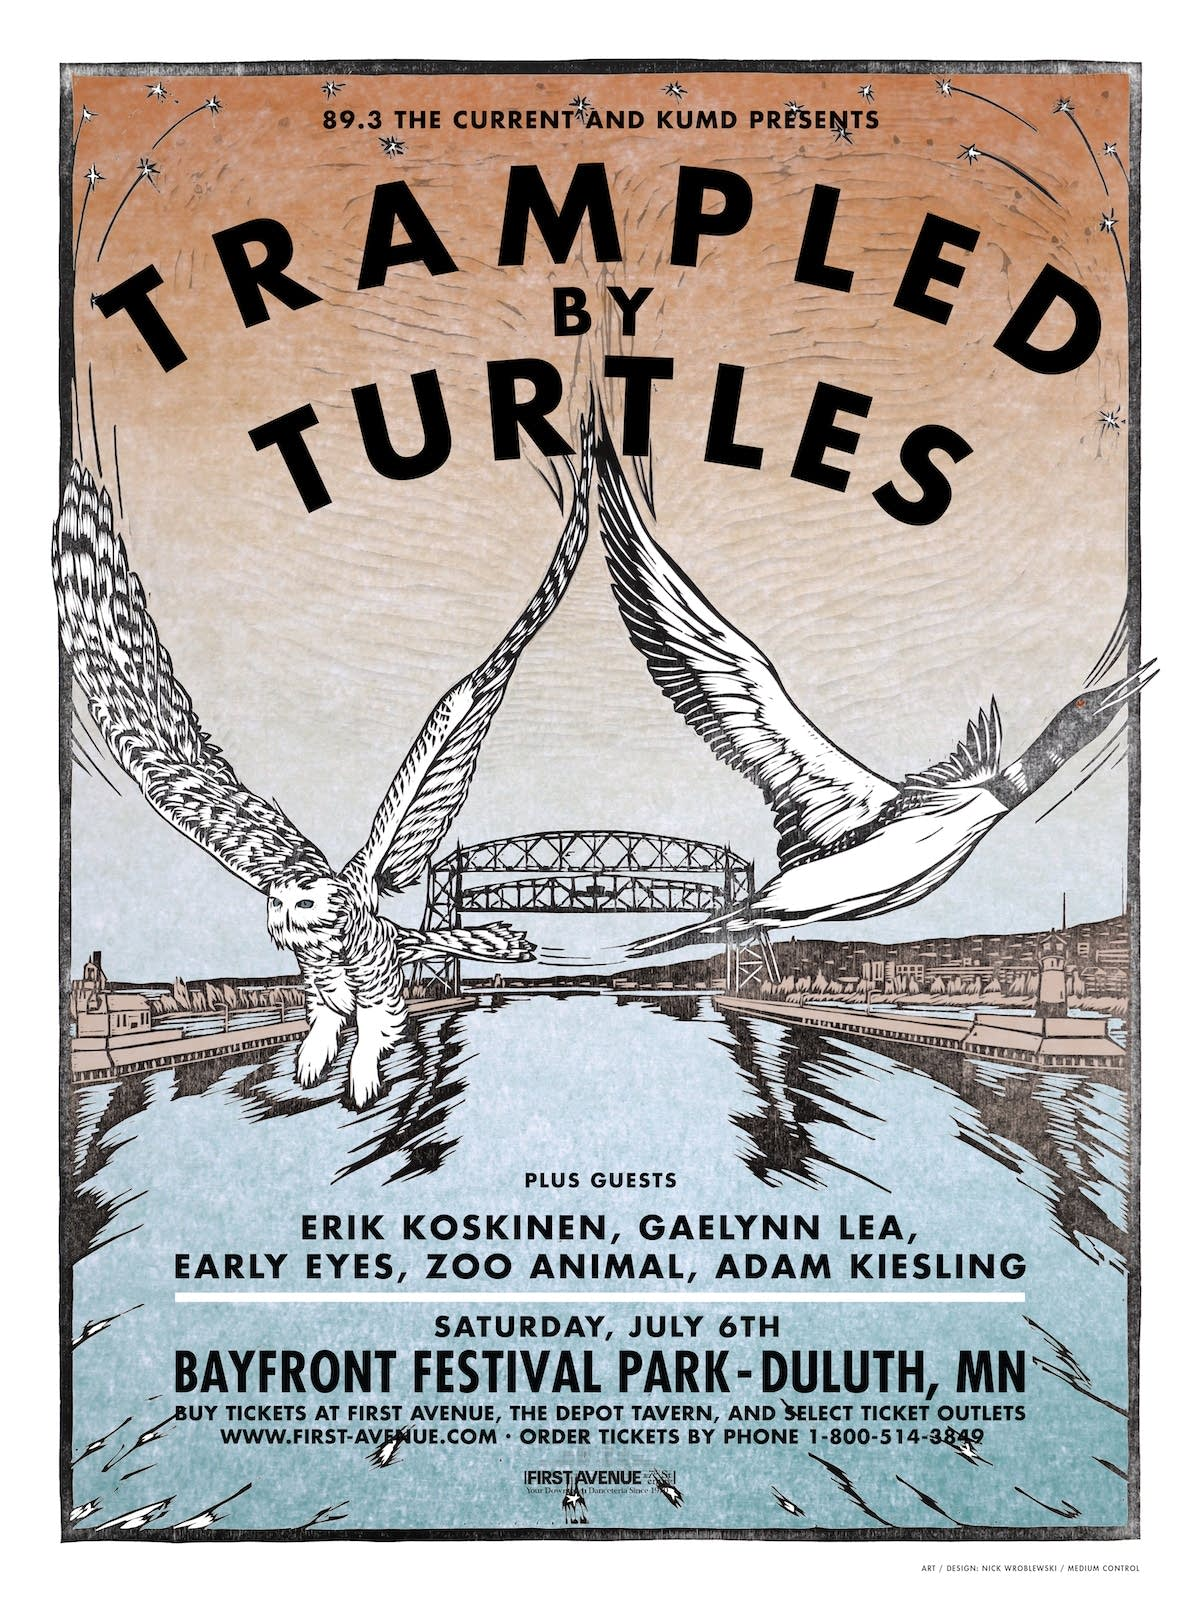 Trampled by Turtles at Bayfront Festival Park